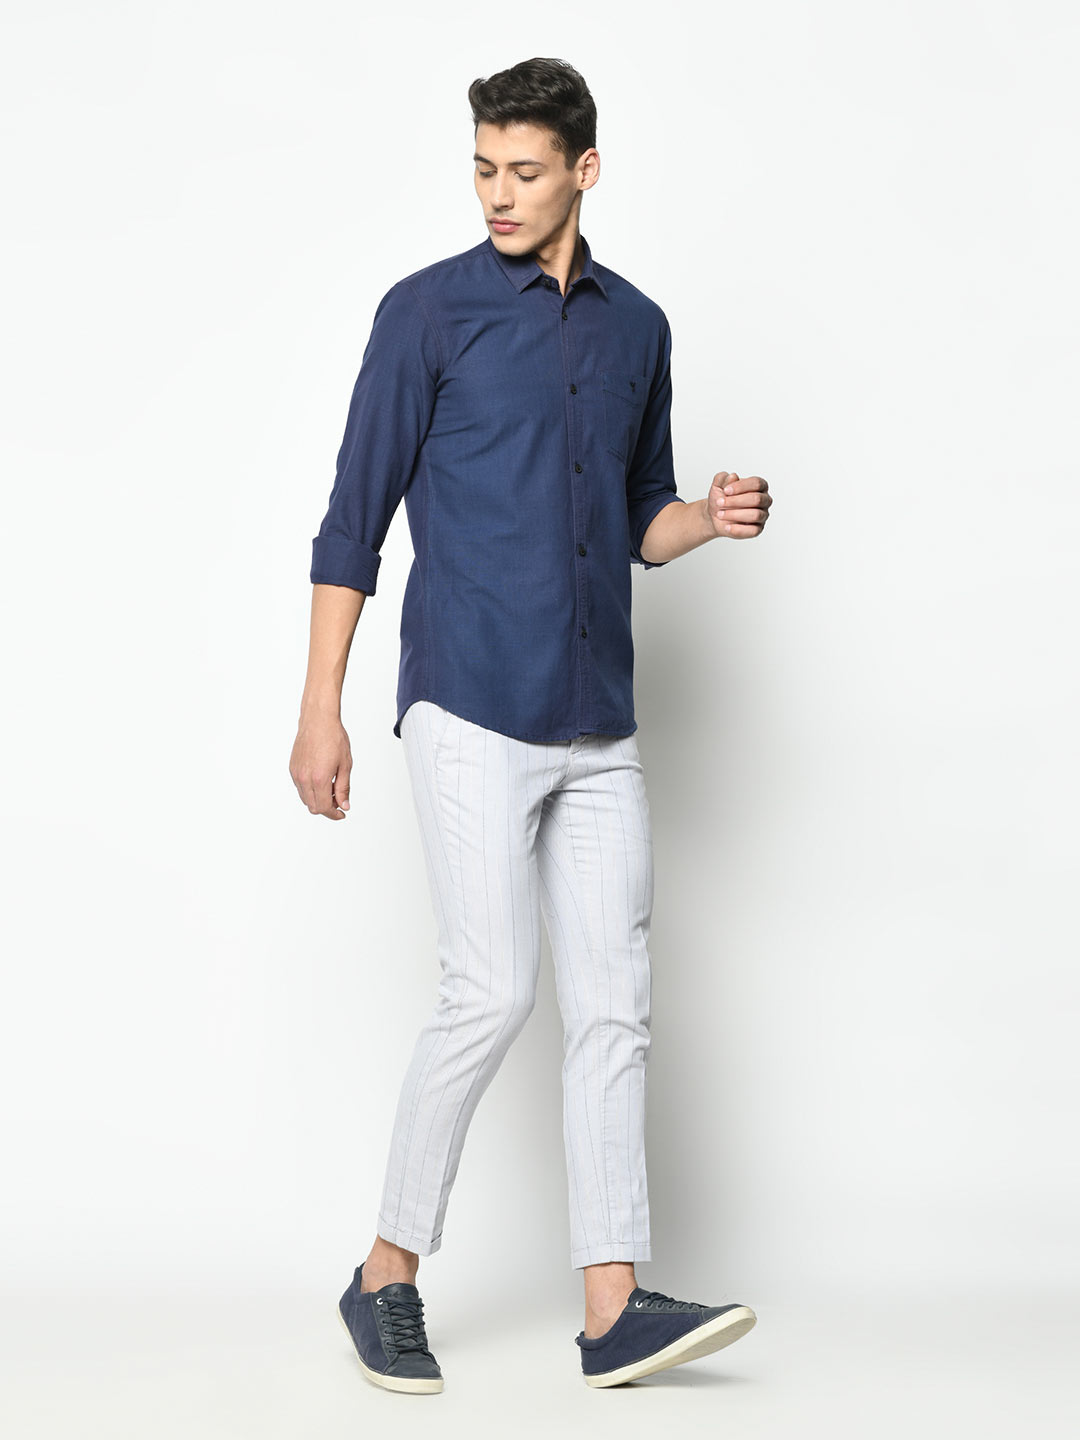 Cotton space blue shirt for men